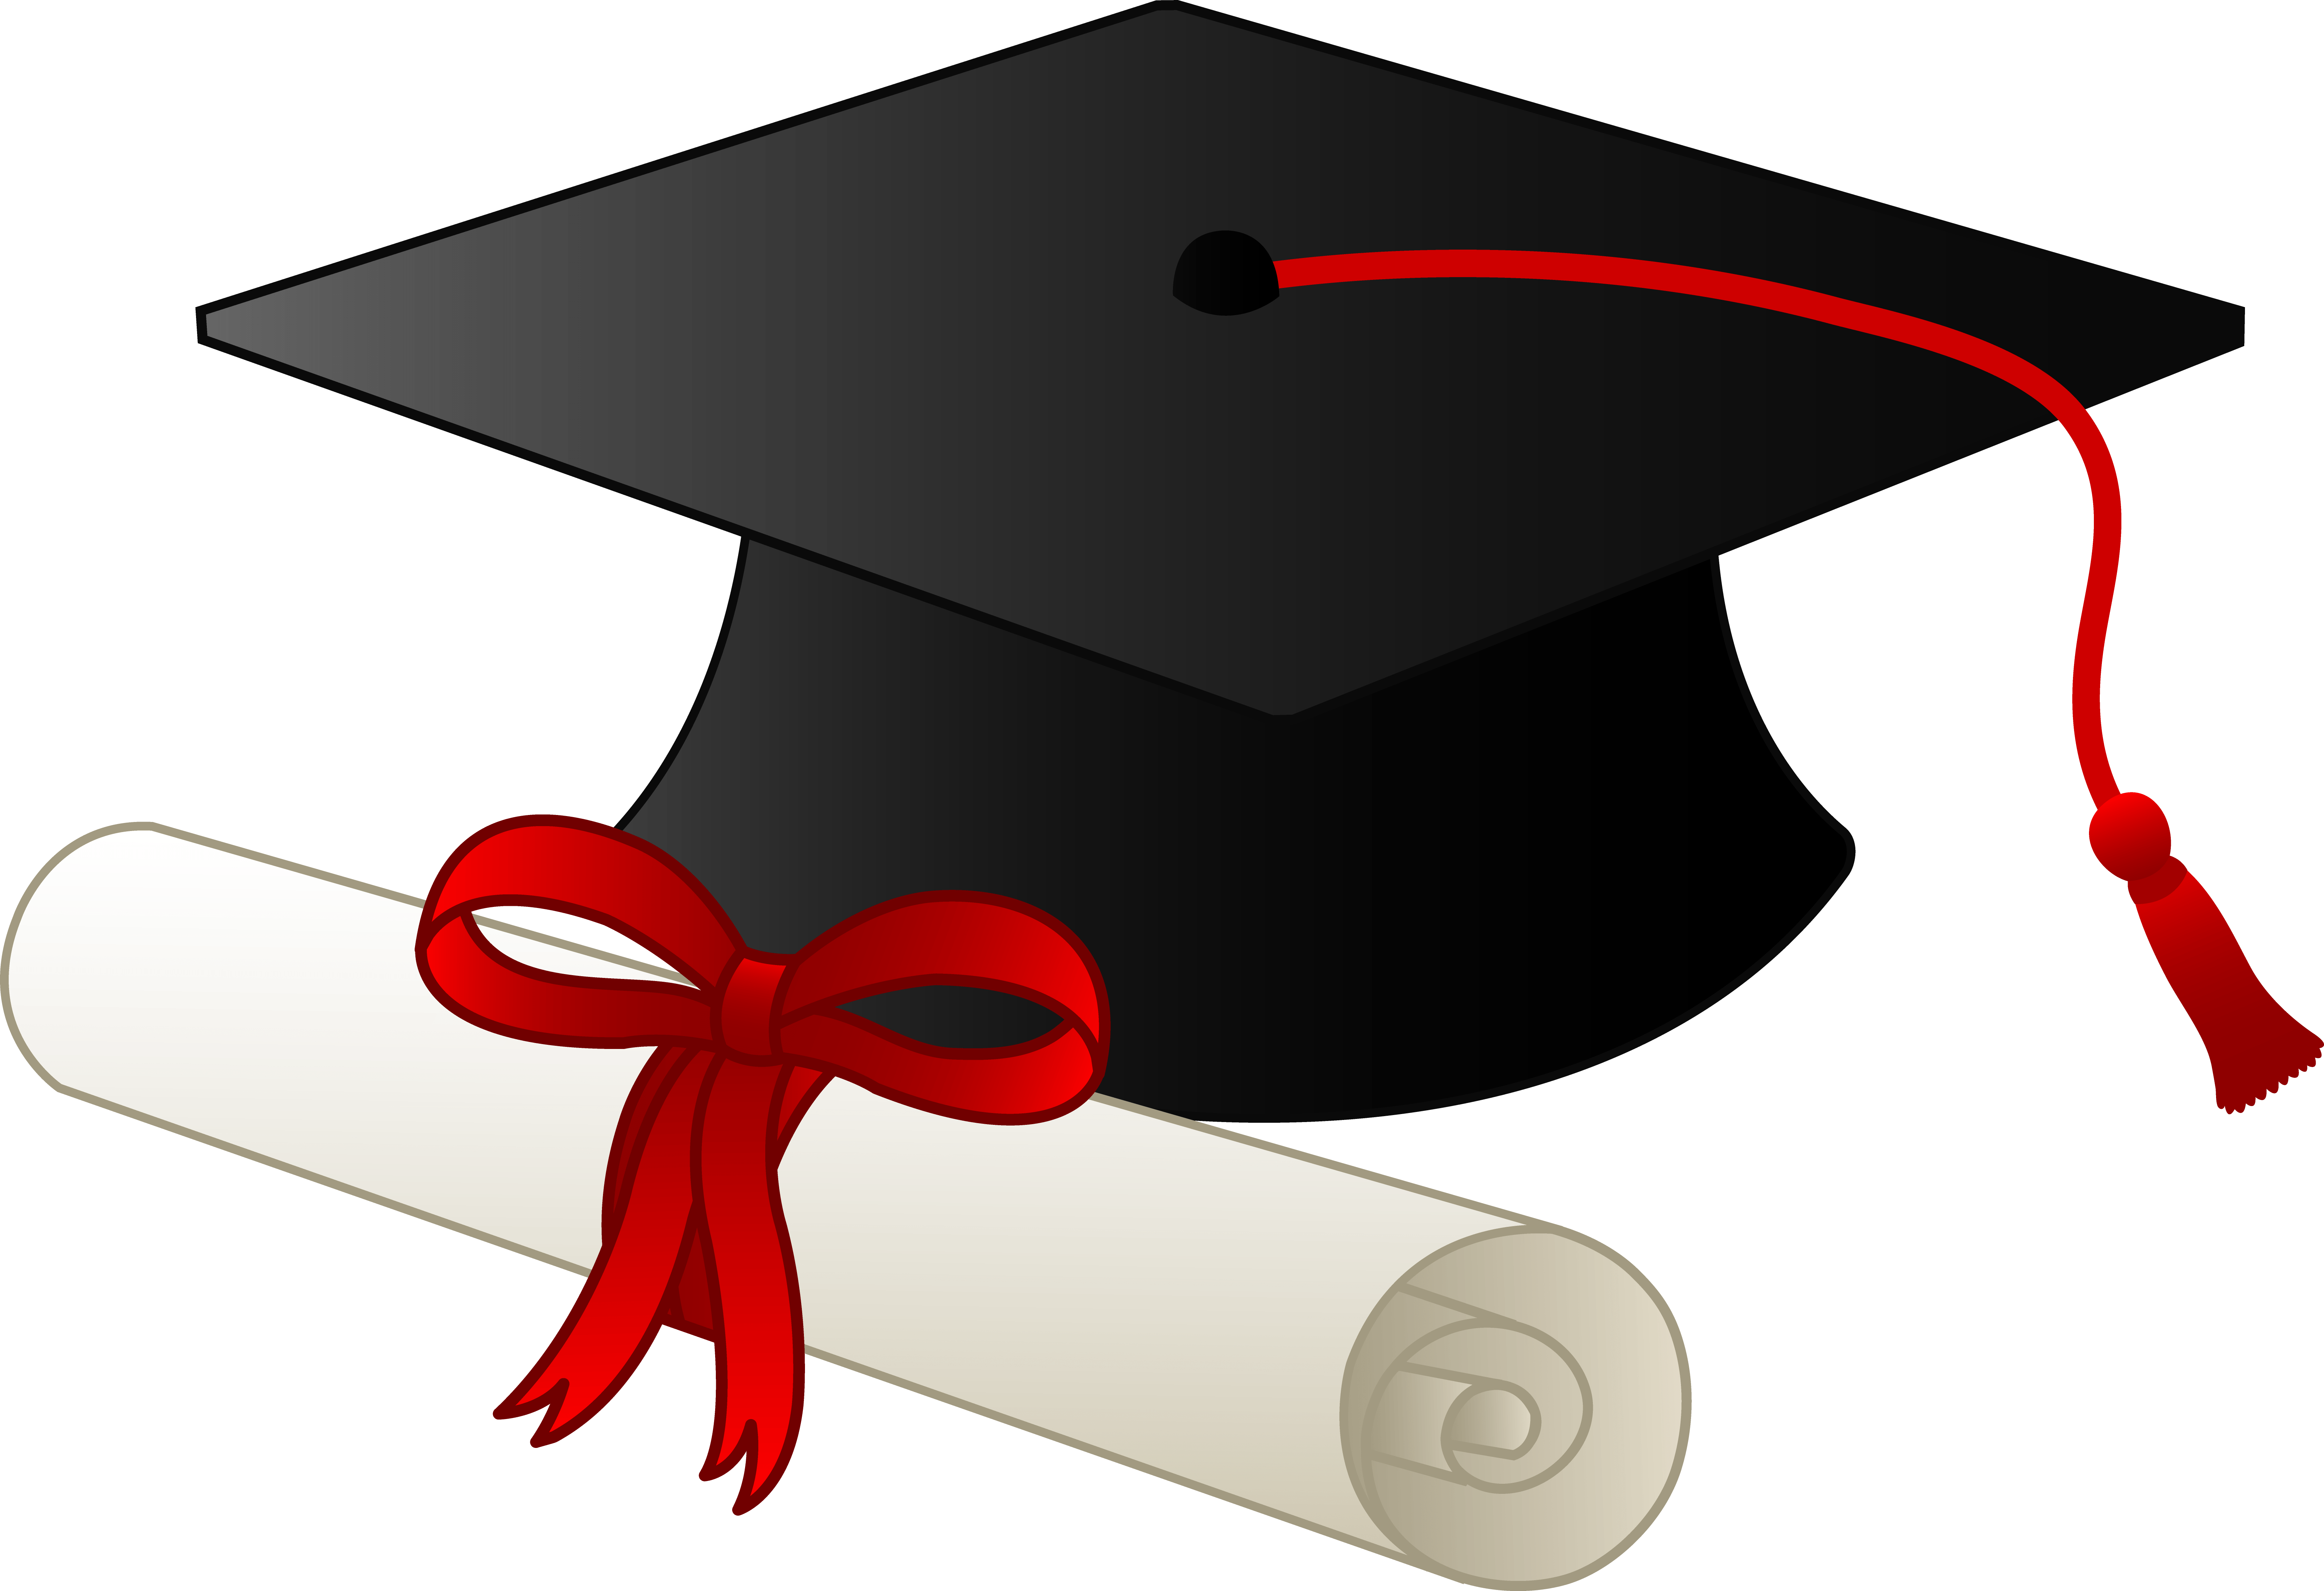 Diploma clipart post secondary. How important are diplomas